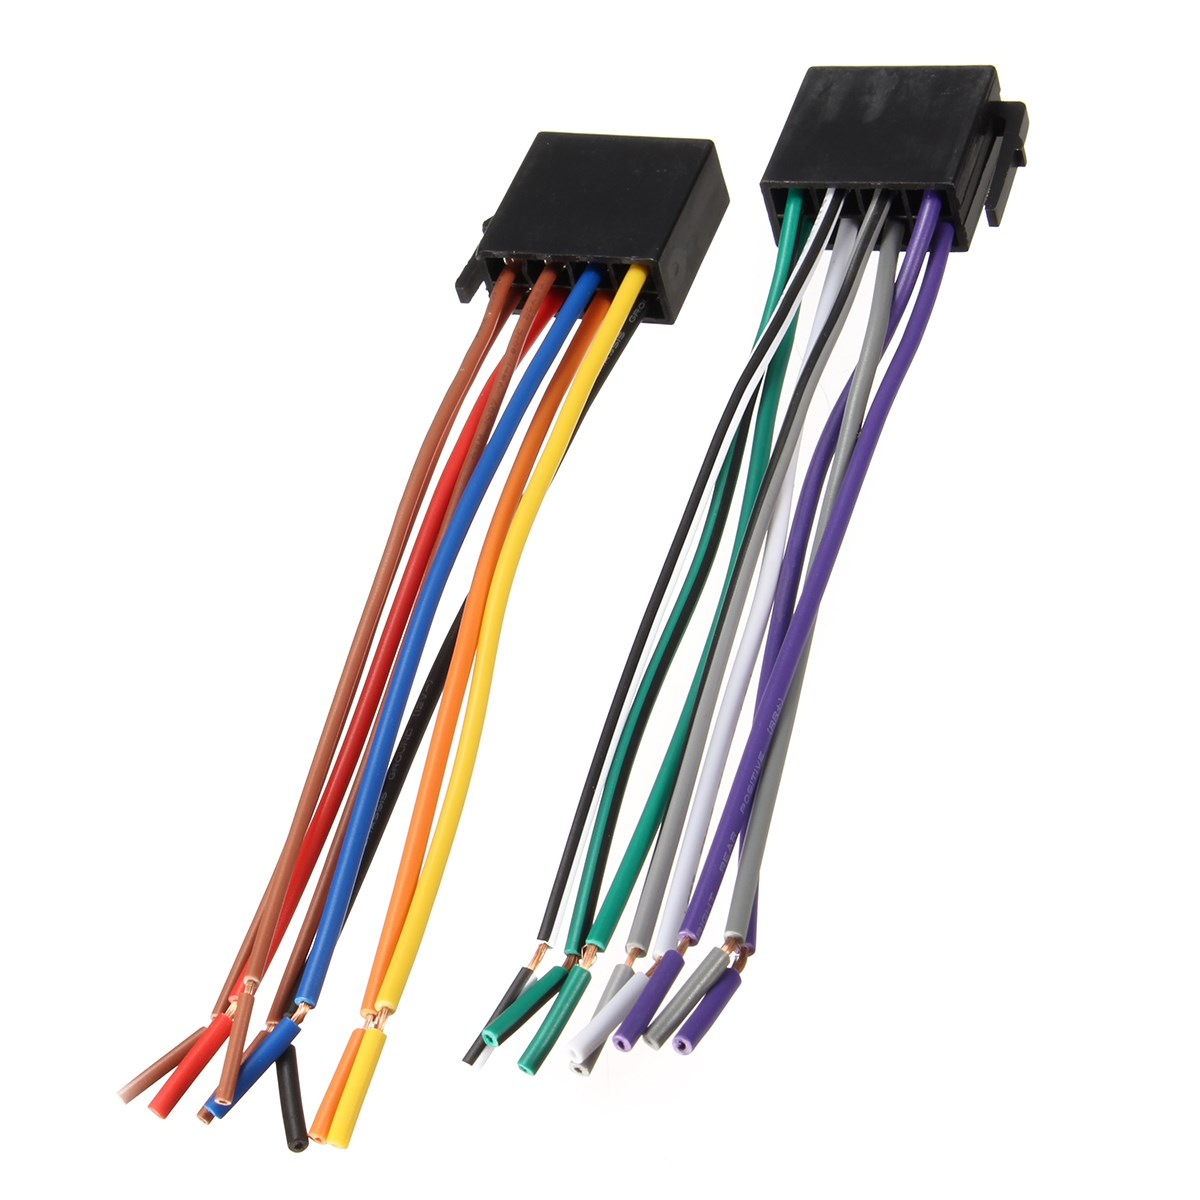 Universal Wire Harness Adapter Connector Cable Radio Wiring Connector Plug for Auto Car Stereo System universal wire harness adapter connector cable radio wiring universal wiring harness connector at gsmx.co